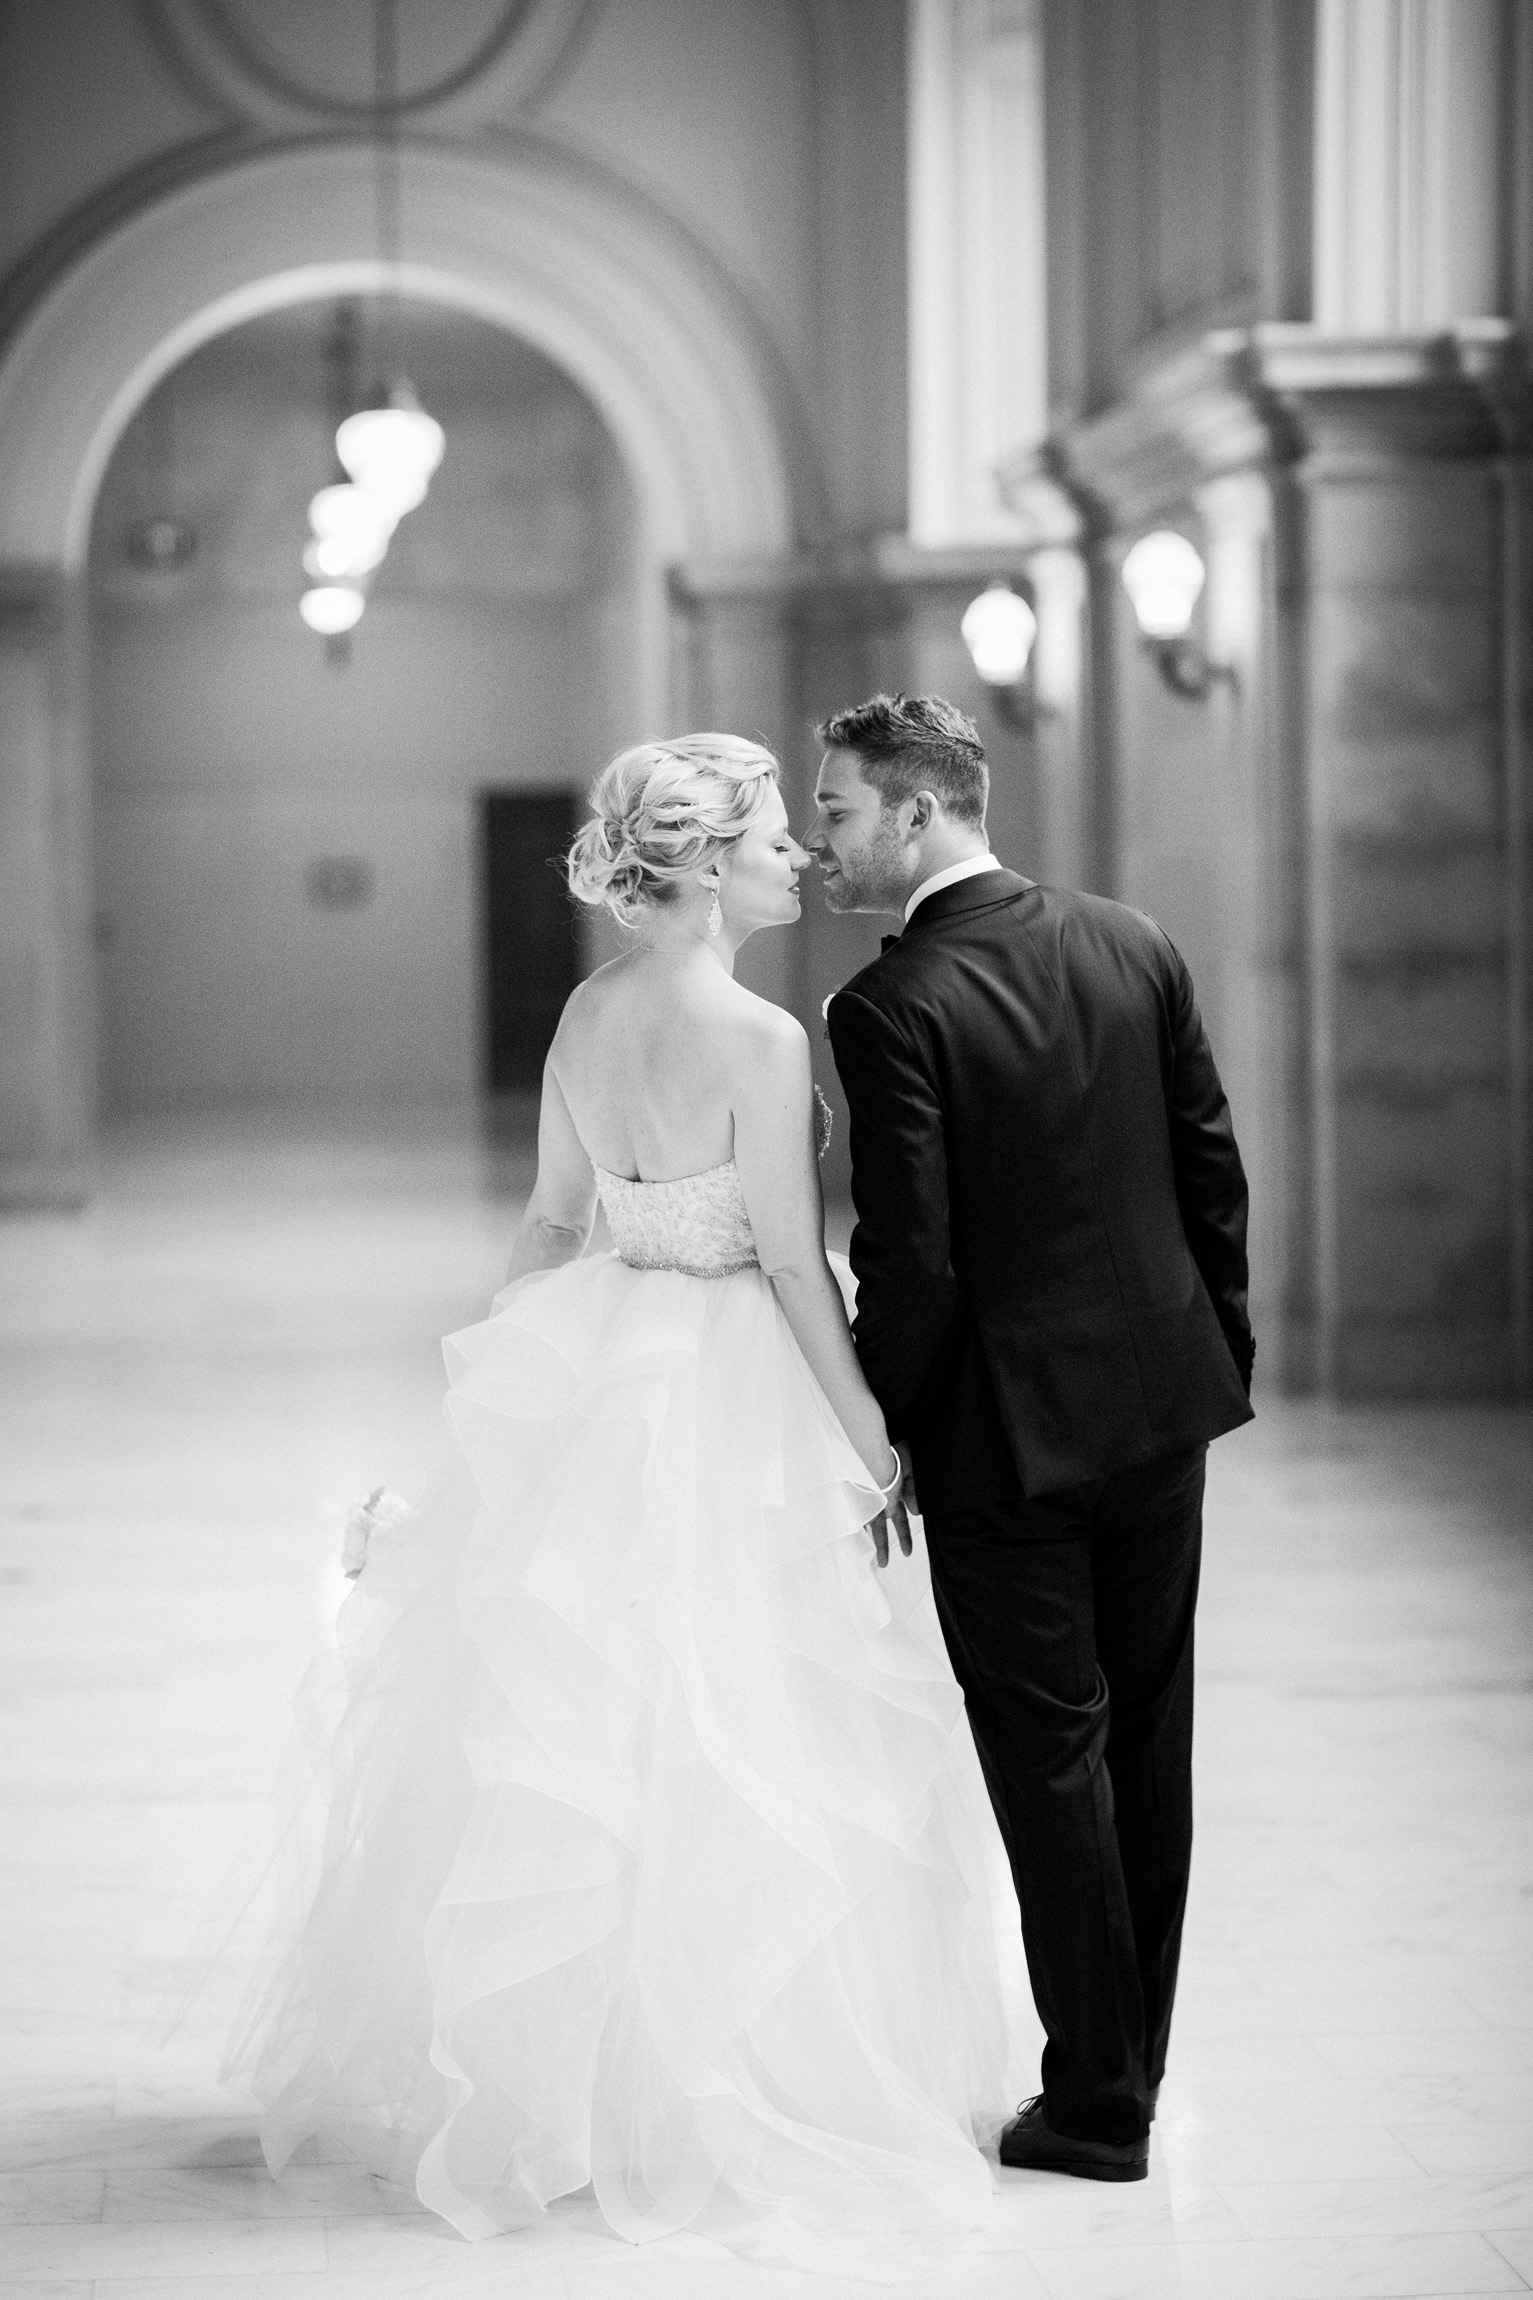 007_janaeshieldsphotography_sanfrancisco_cityhall_weddings.jpg